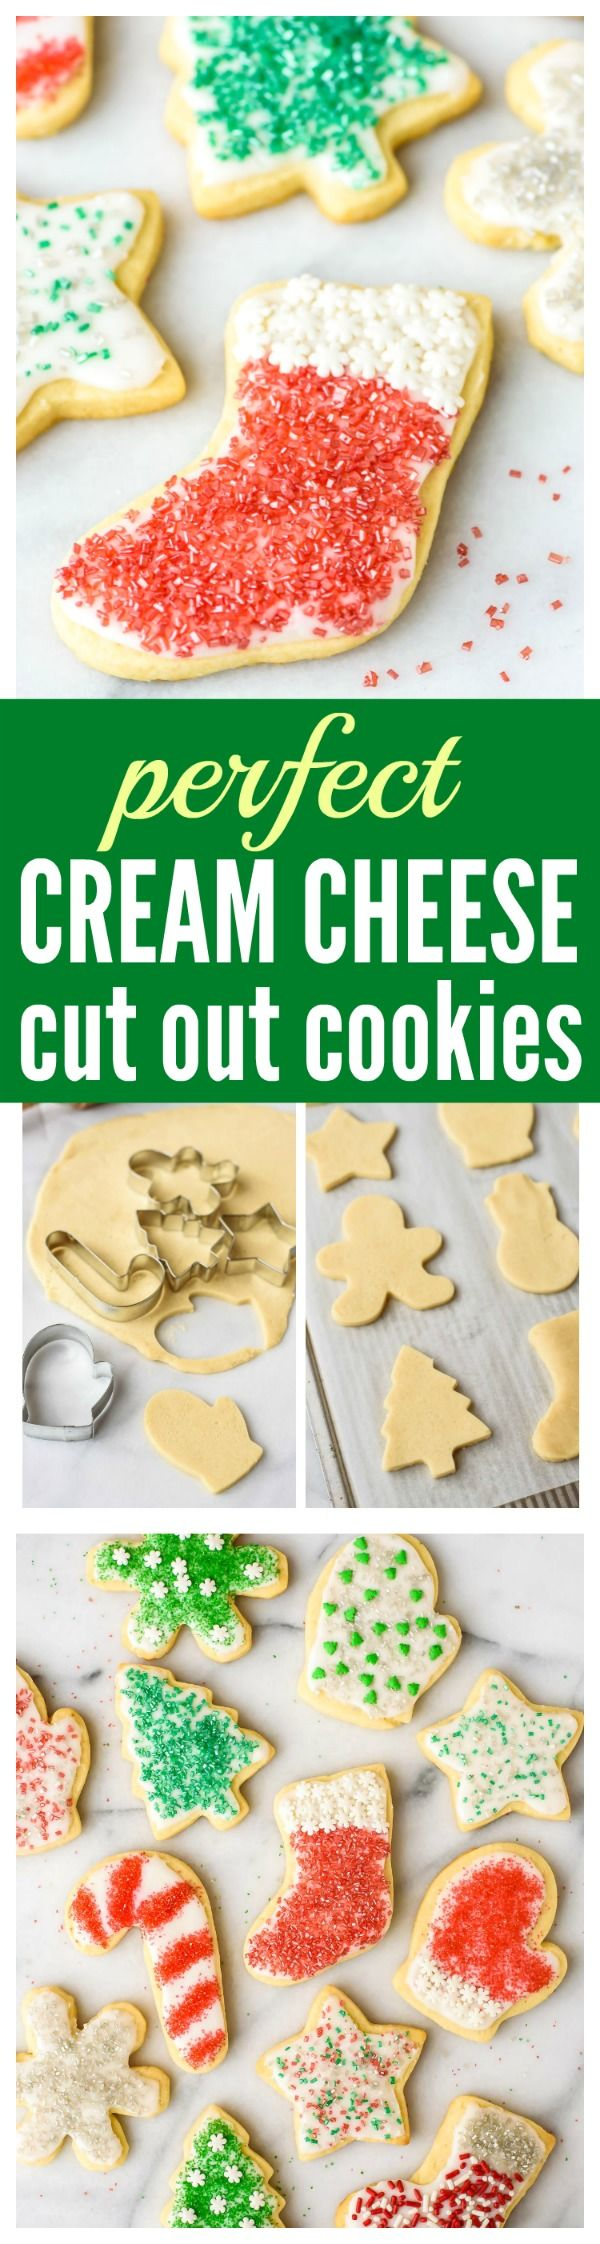 The BEST Cut Out Sugar Cookies from scratch, with step-by-step photos. Cream cheese is the secret ingredient that makes the sugar cookies super soft, even days after they are baked. This is the only cut out Christmas cookie recipe you will ever need! Recipe at wellplated.com | @wellplated